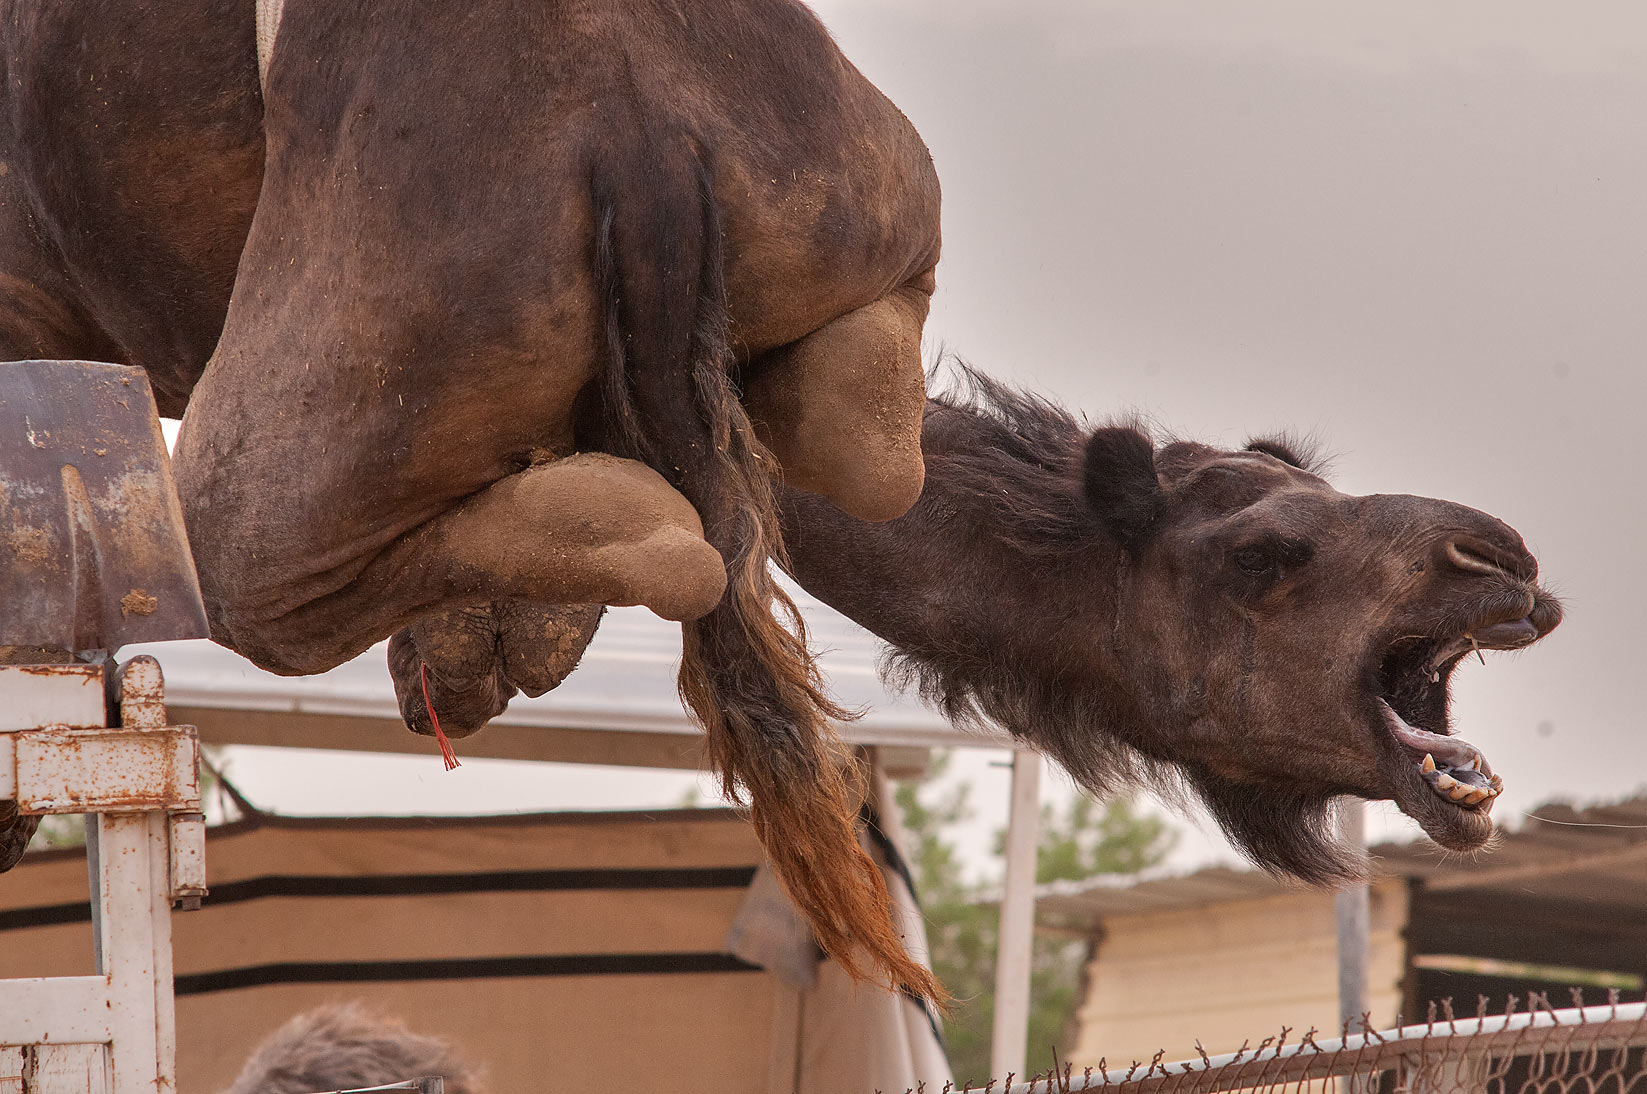 Large camel loaded by crane to a truck after it...Market, Abu Hamour area. Doha, Qatar